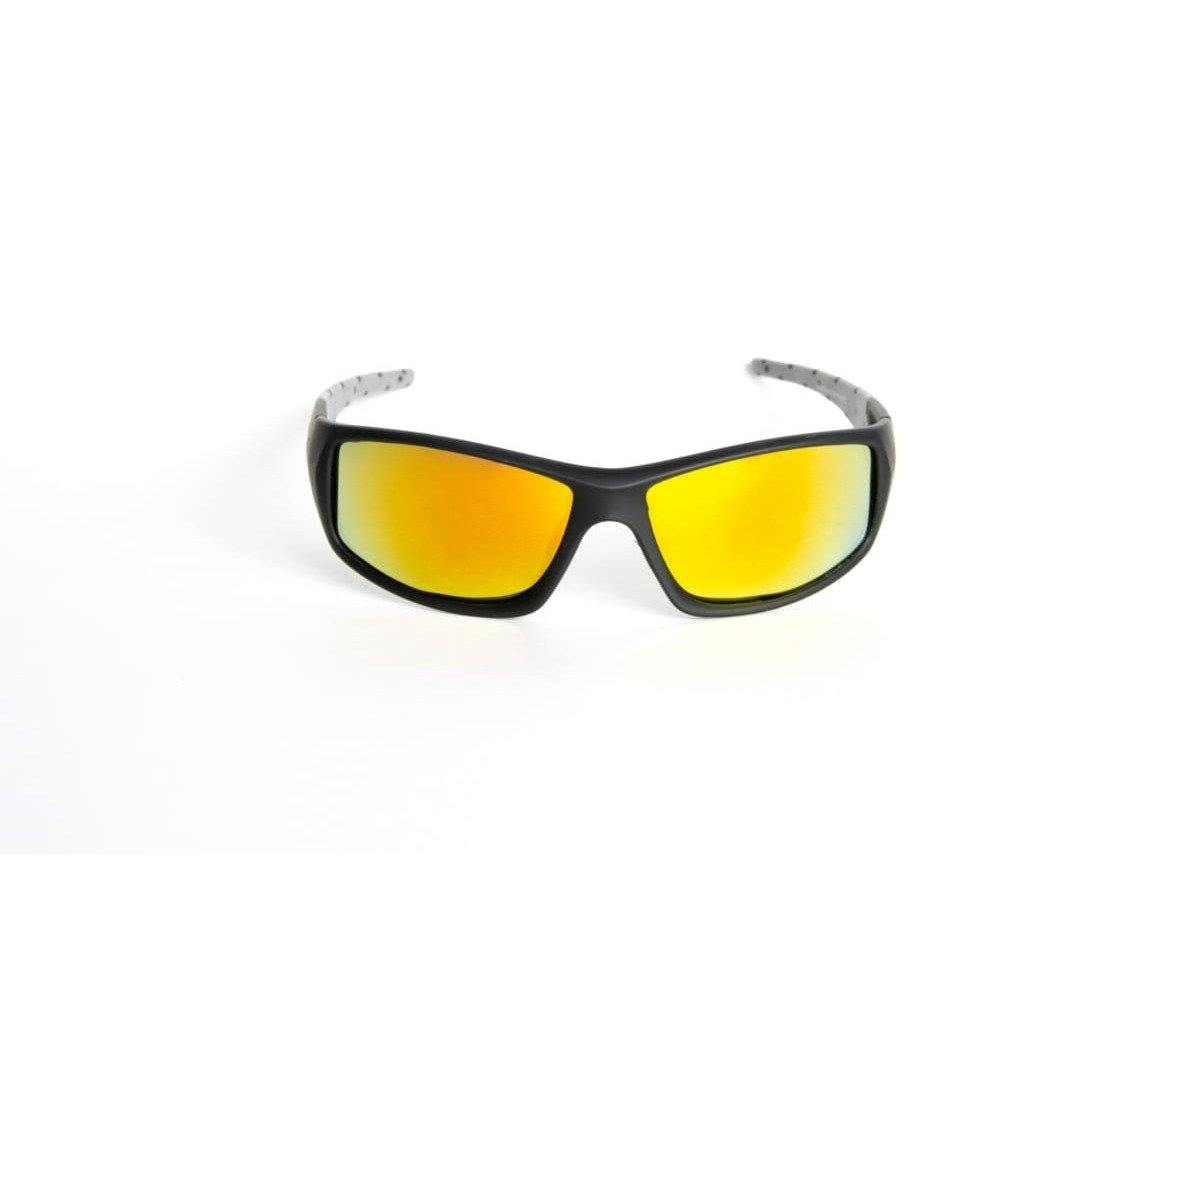 "Sports Sunglasses Designer Sunglasses Model ""Scorpion Tail"" By: The Ever Collection"